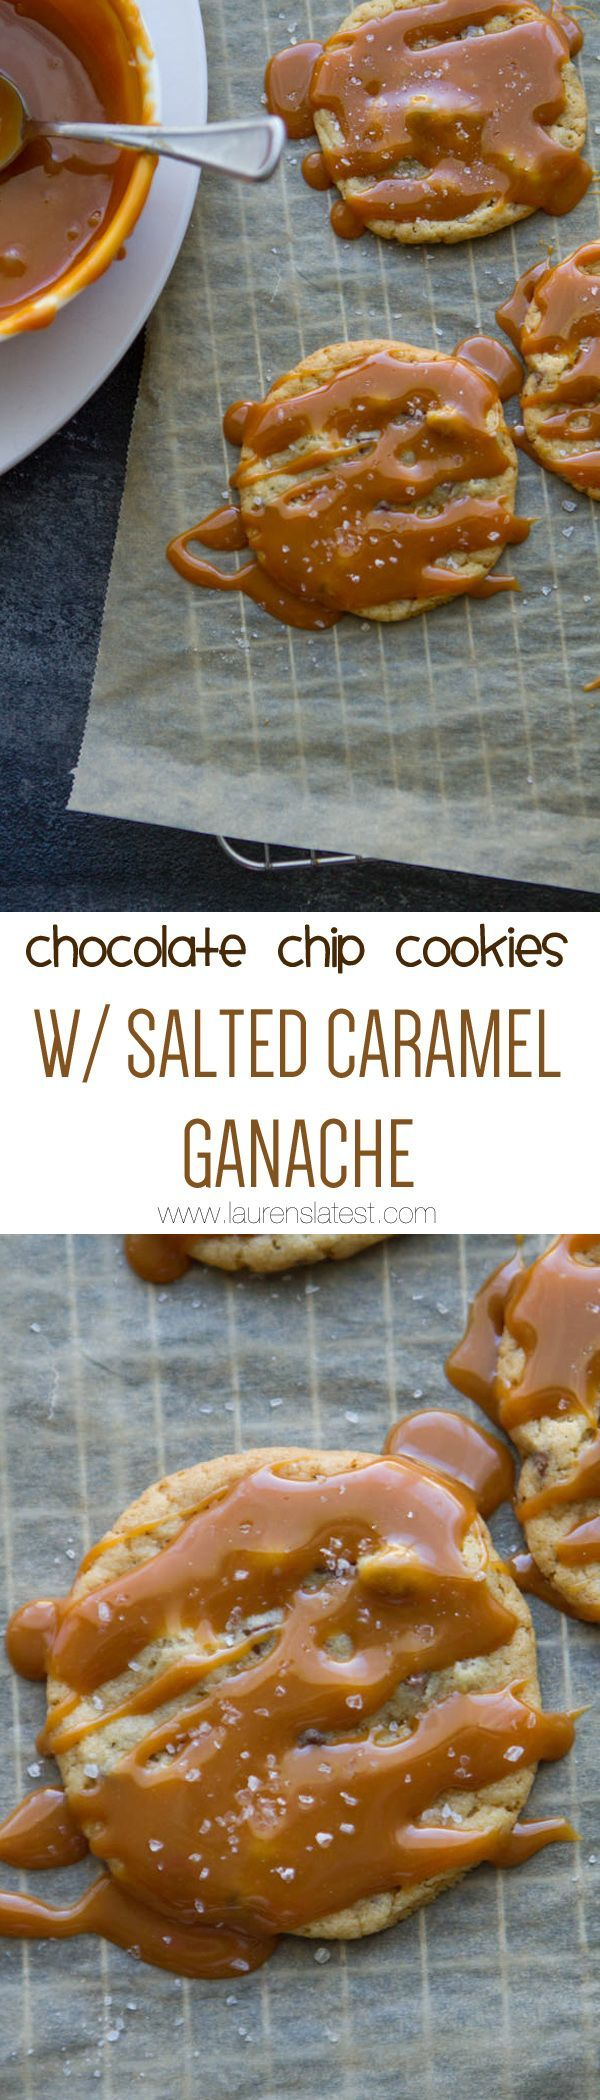 Chocolate Chip Cookies with Salted Caramel Ganache... You will DIE at how outrageously delicious these little nuggets are!